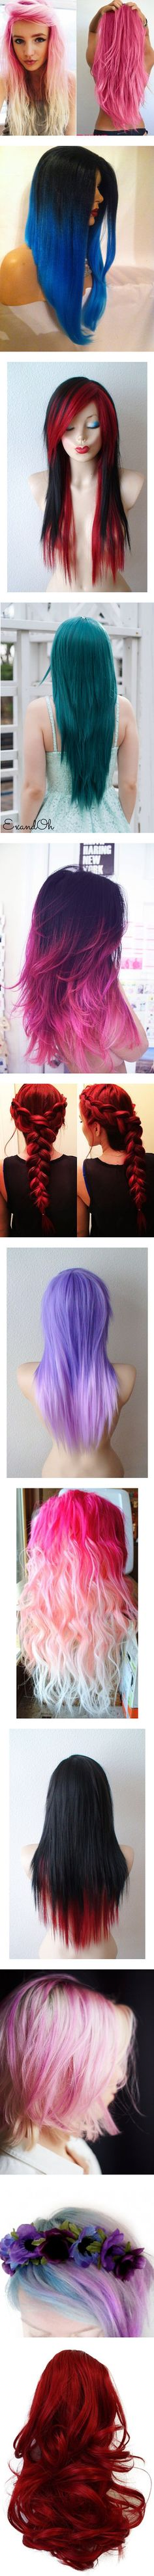 """""""Colored Hair 12"""" by meranda-wilkes ❤ liked on Polyvore"""